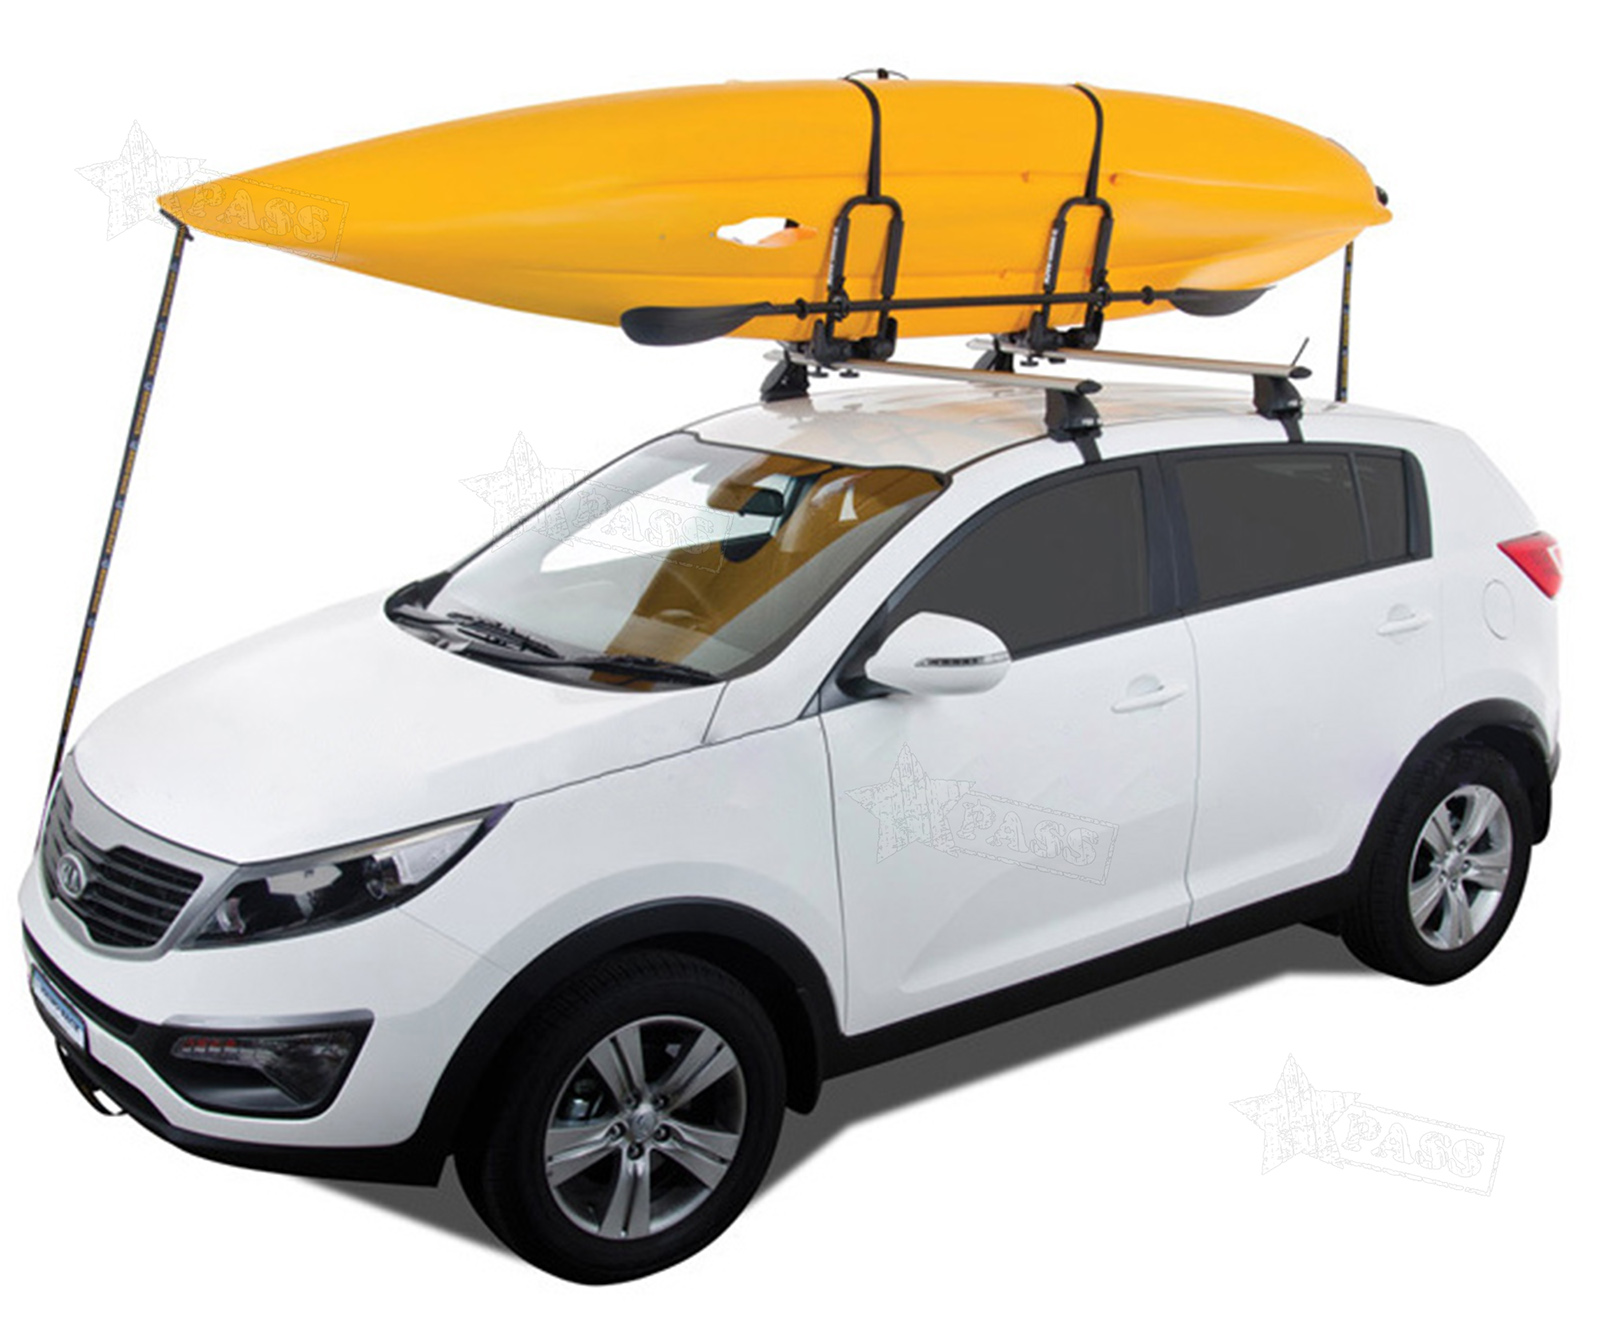 Kayak Roof Carrier >> Details About Heavy Duty Fold Away Kayak Roof Bars Rack Double J Bars Storage Strong Support